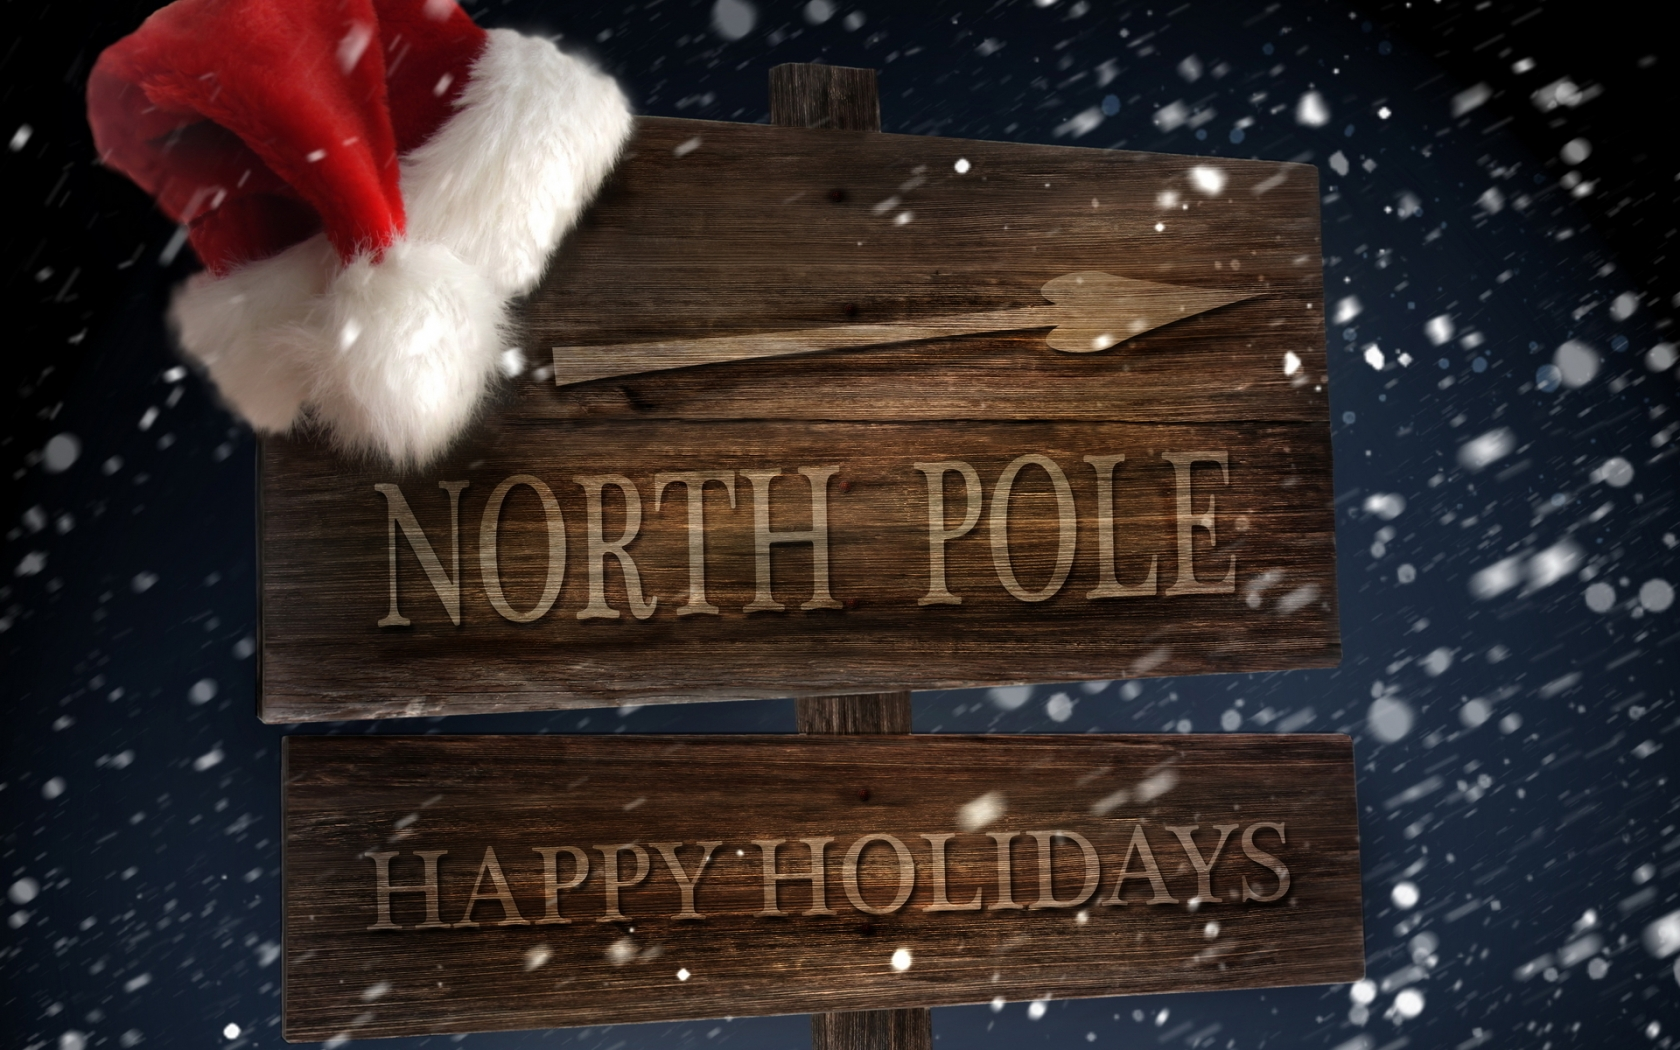 North Pole for 1680 x 1050 widescreen resolution